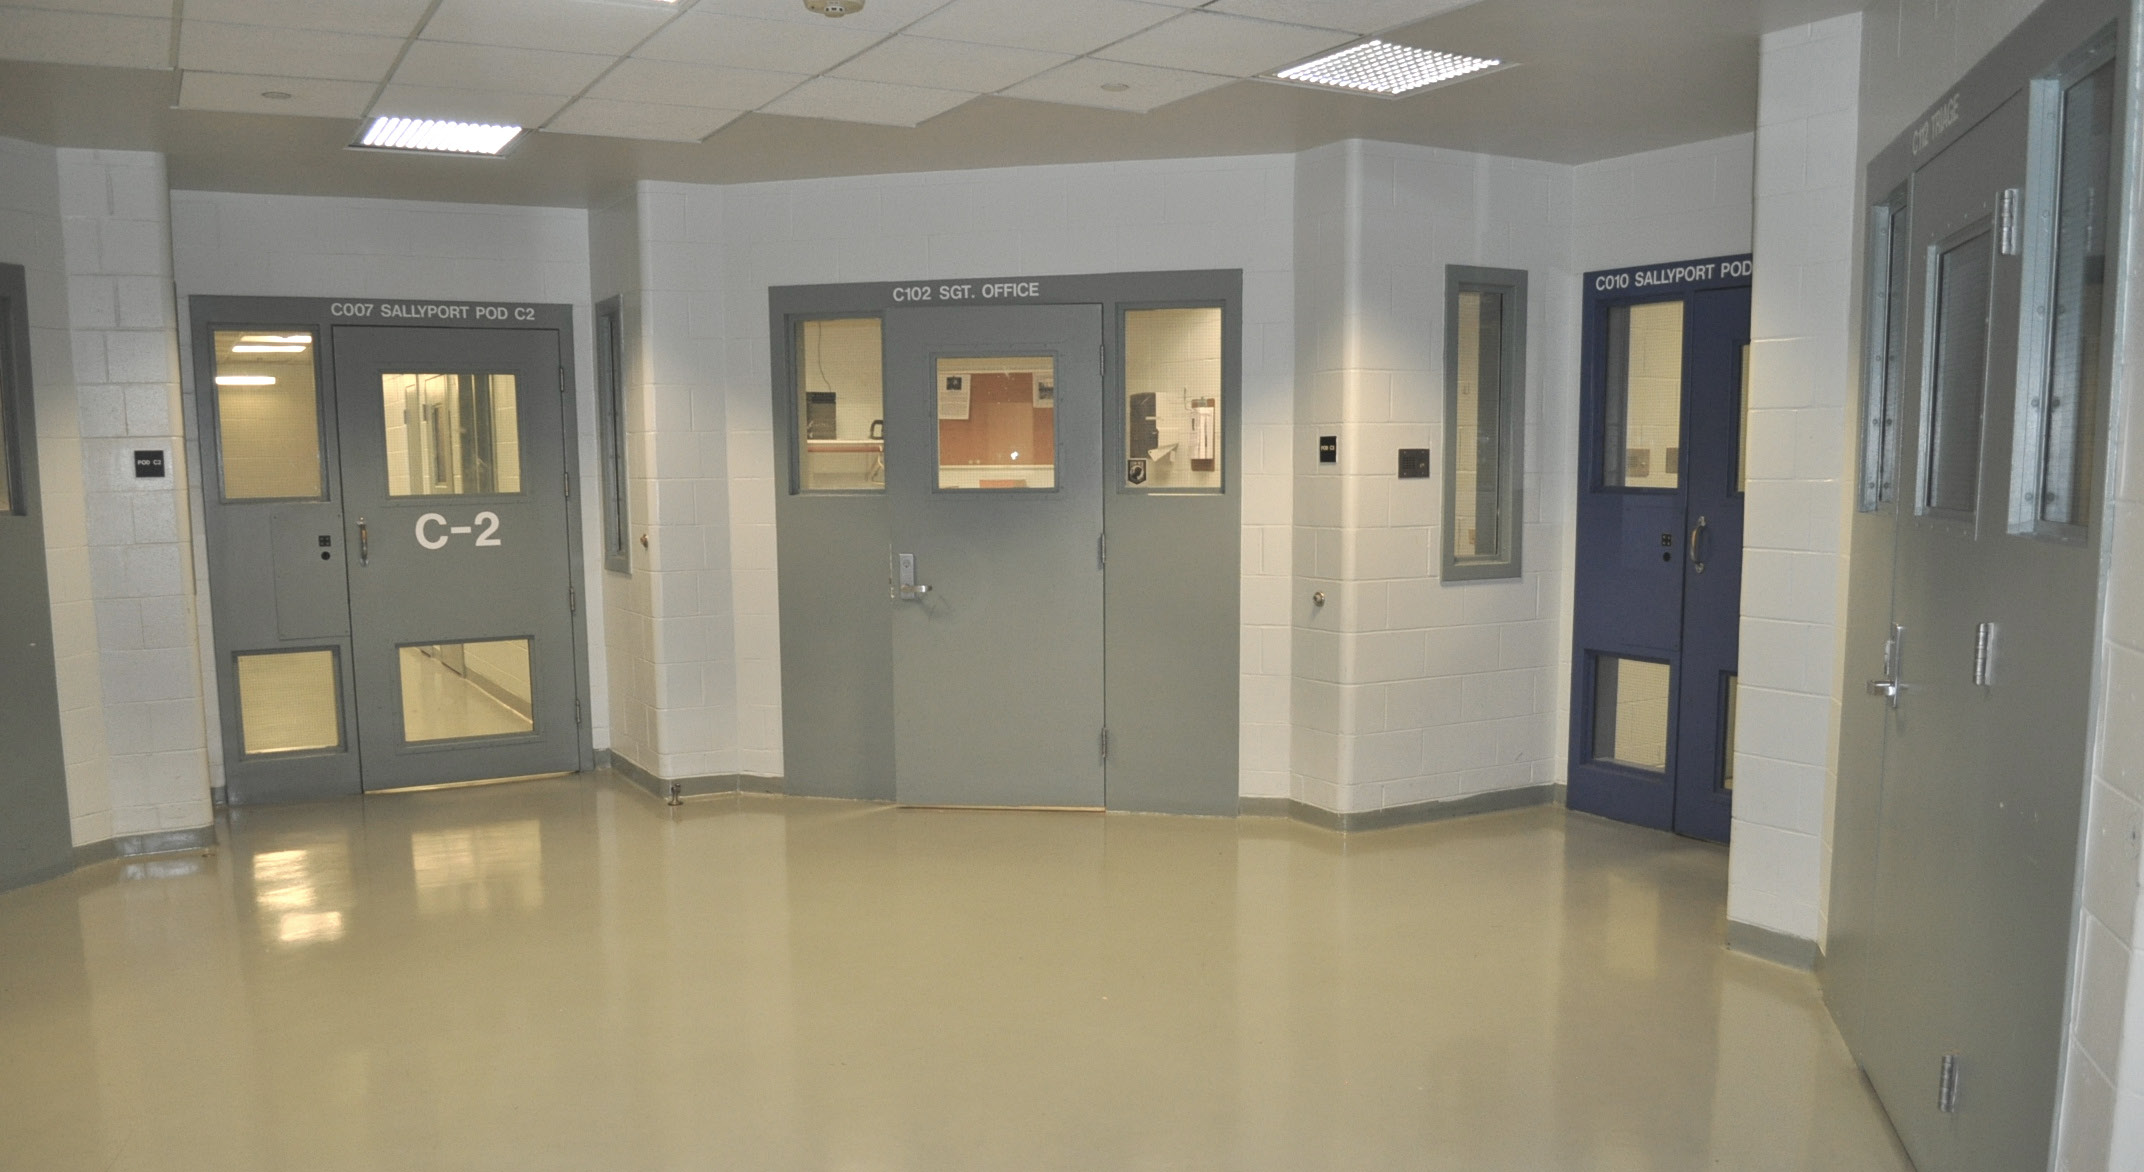 Bail room of the County Jail